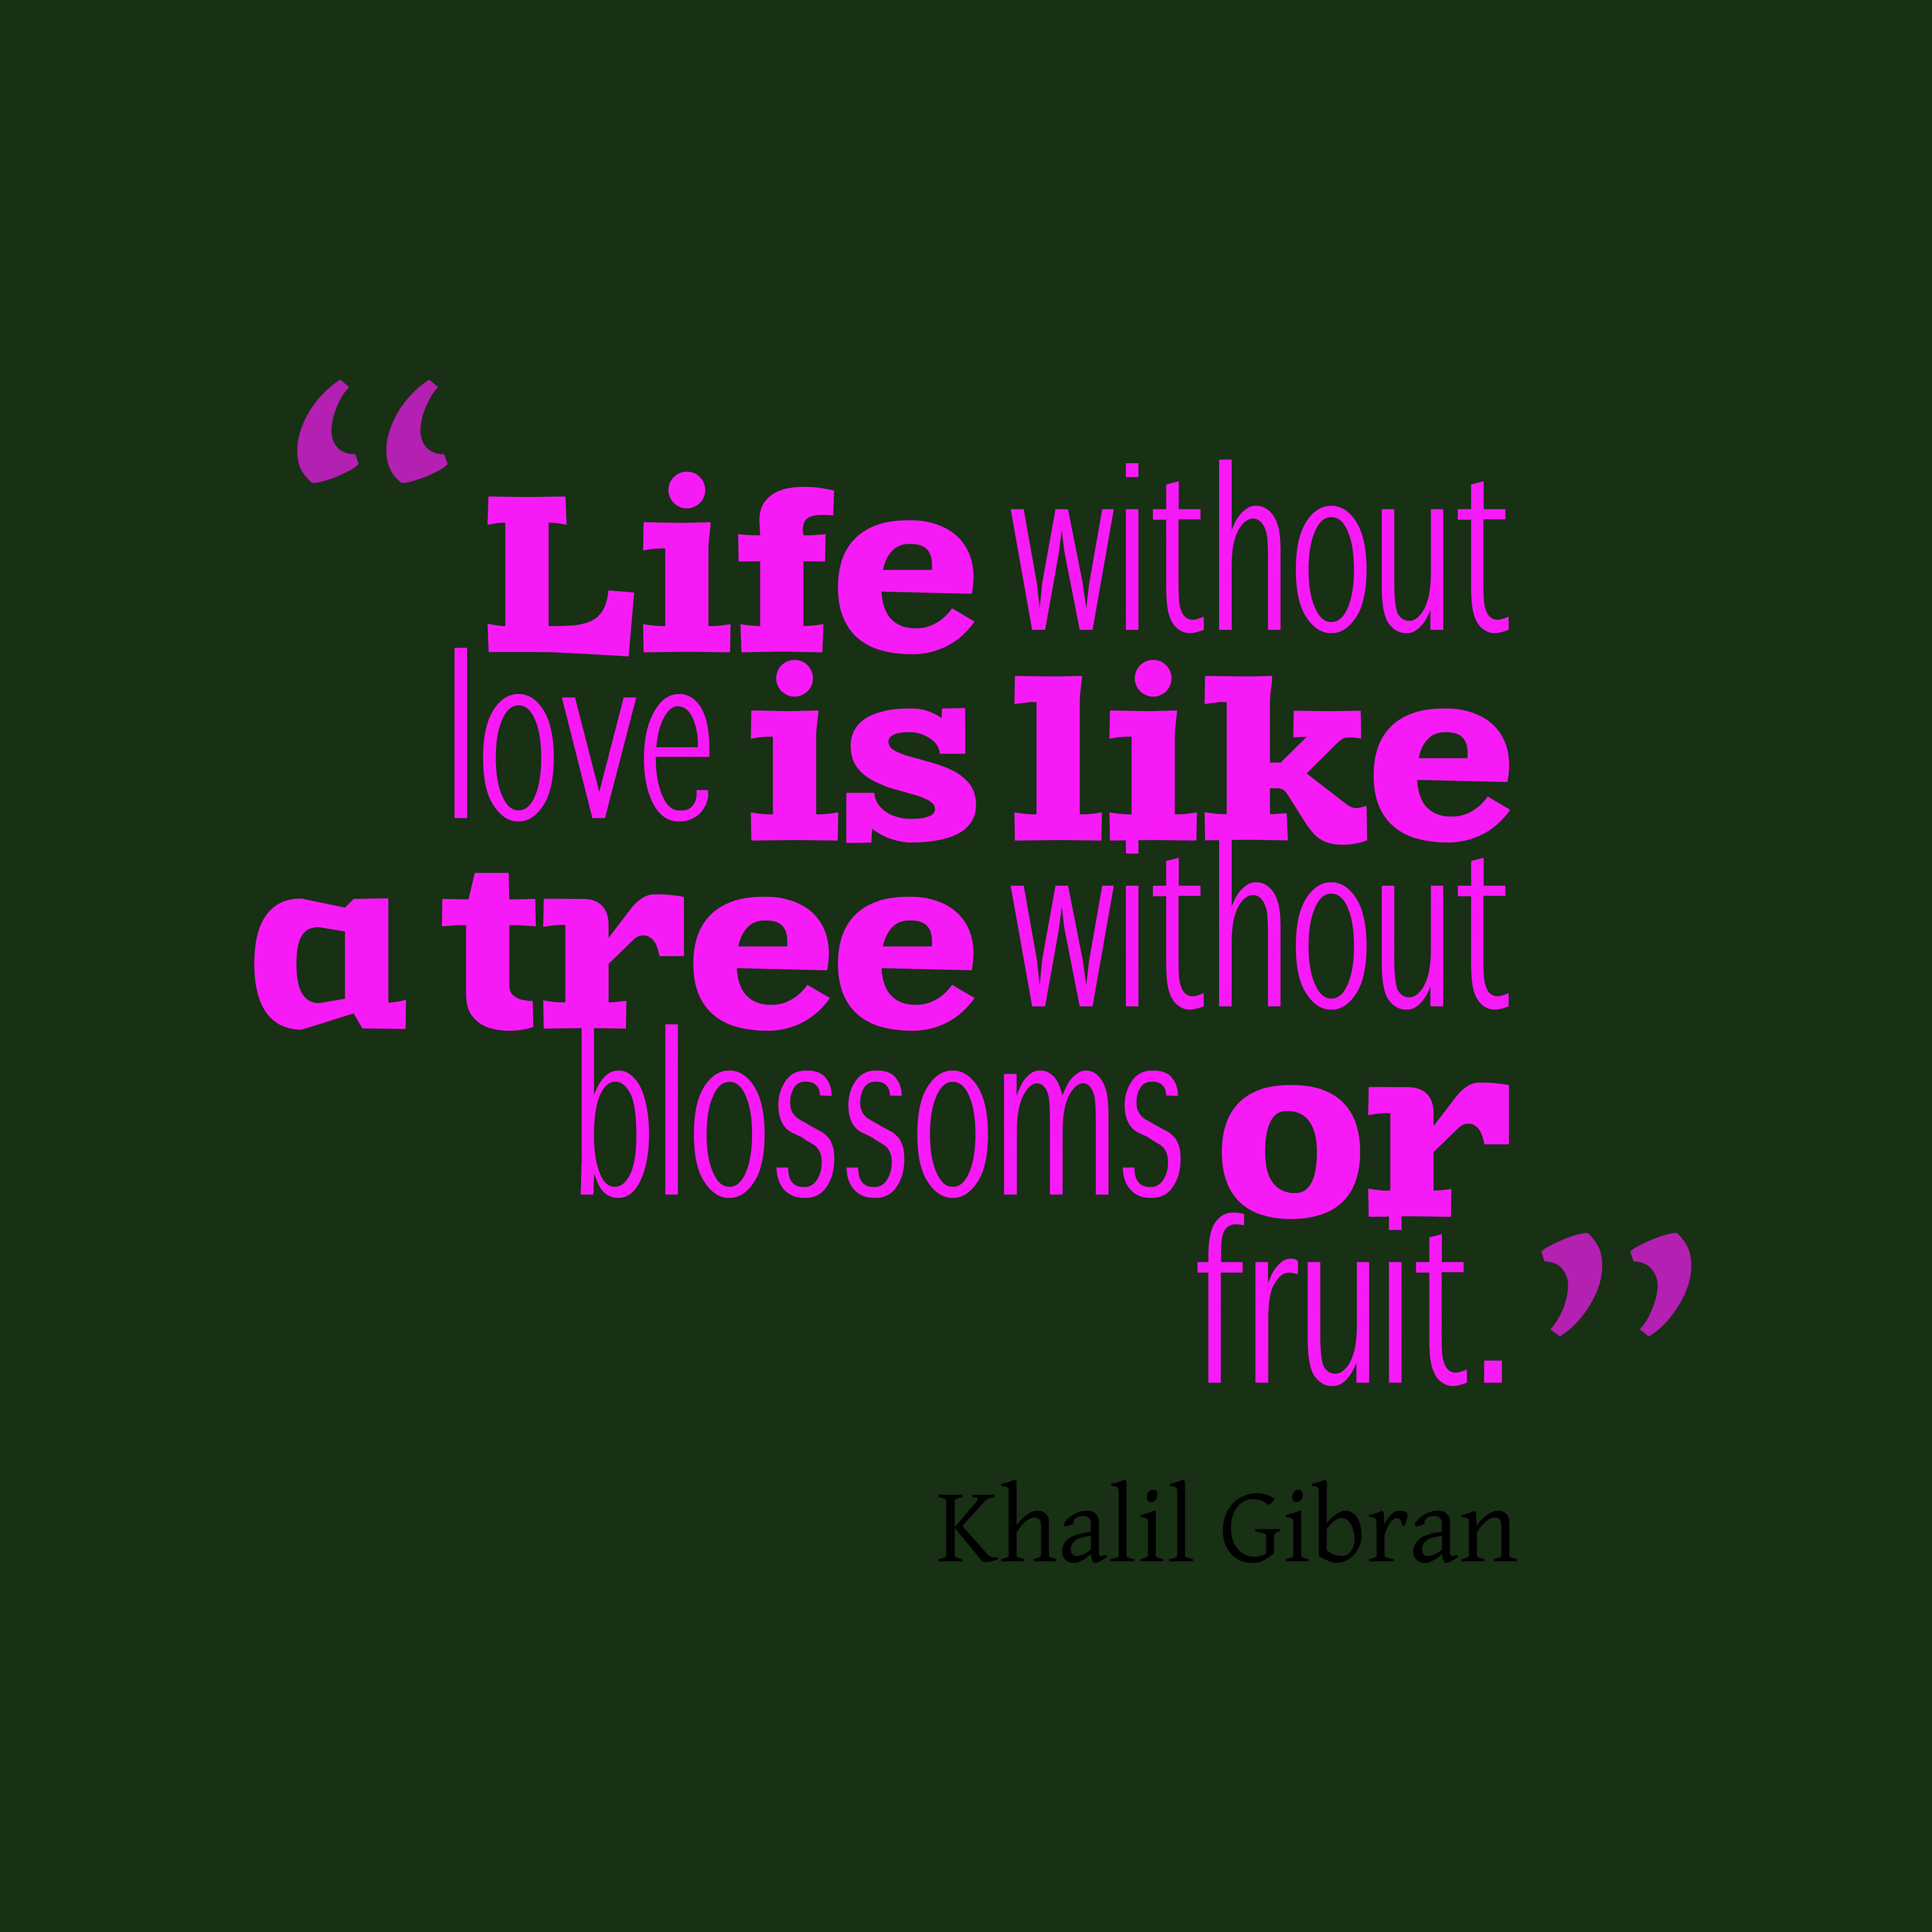 Quotes 3: 741 ALL NEW MOTIVATIONAL QUOTES KHALIL GIBRAN